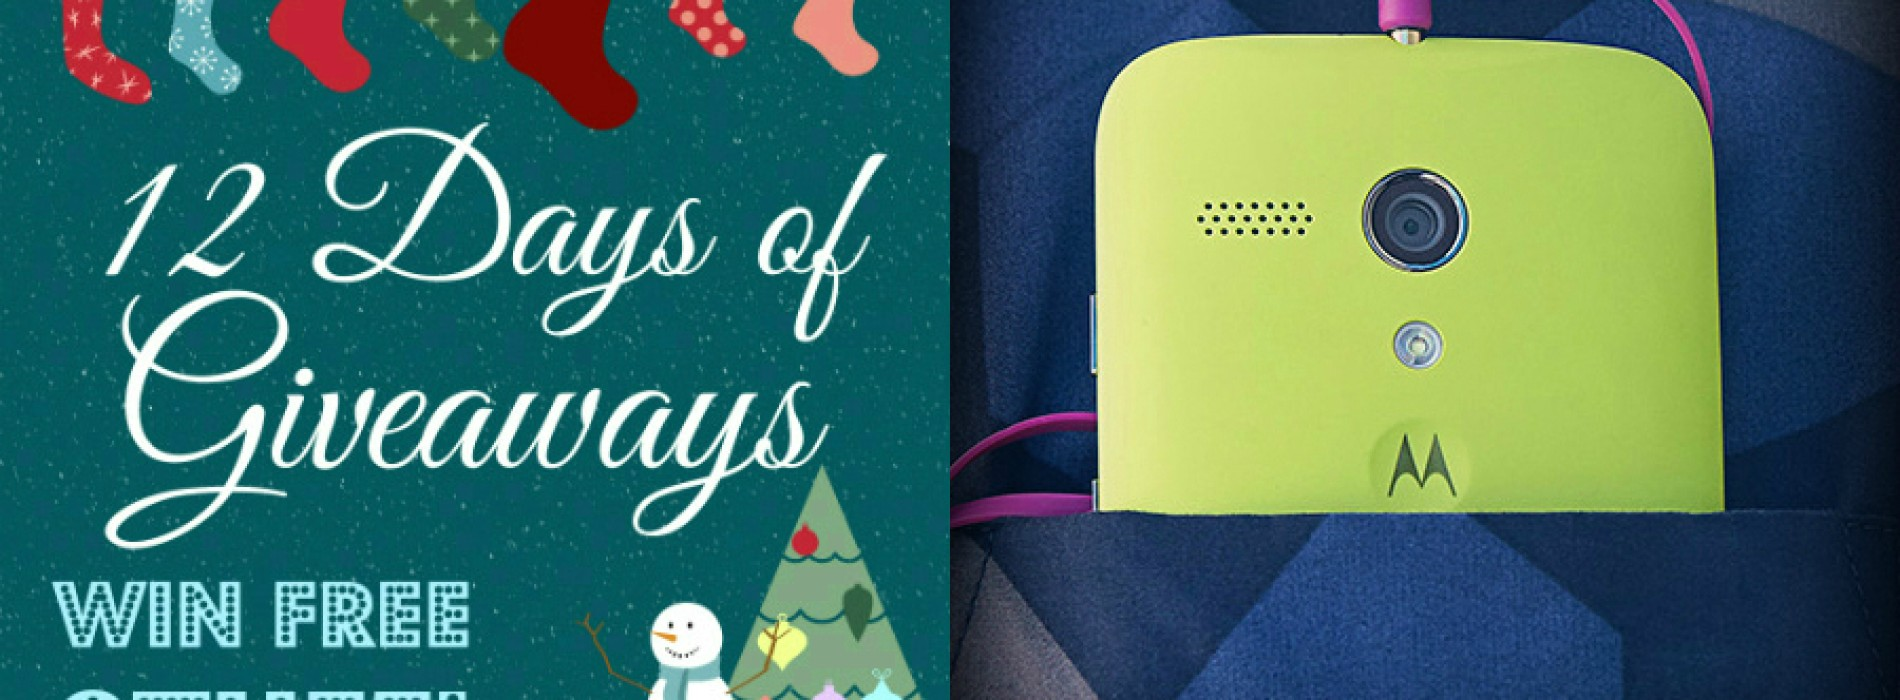 Win a Motorola Moto G [12 Days of Giveaways]